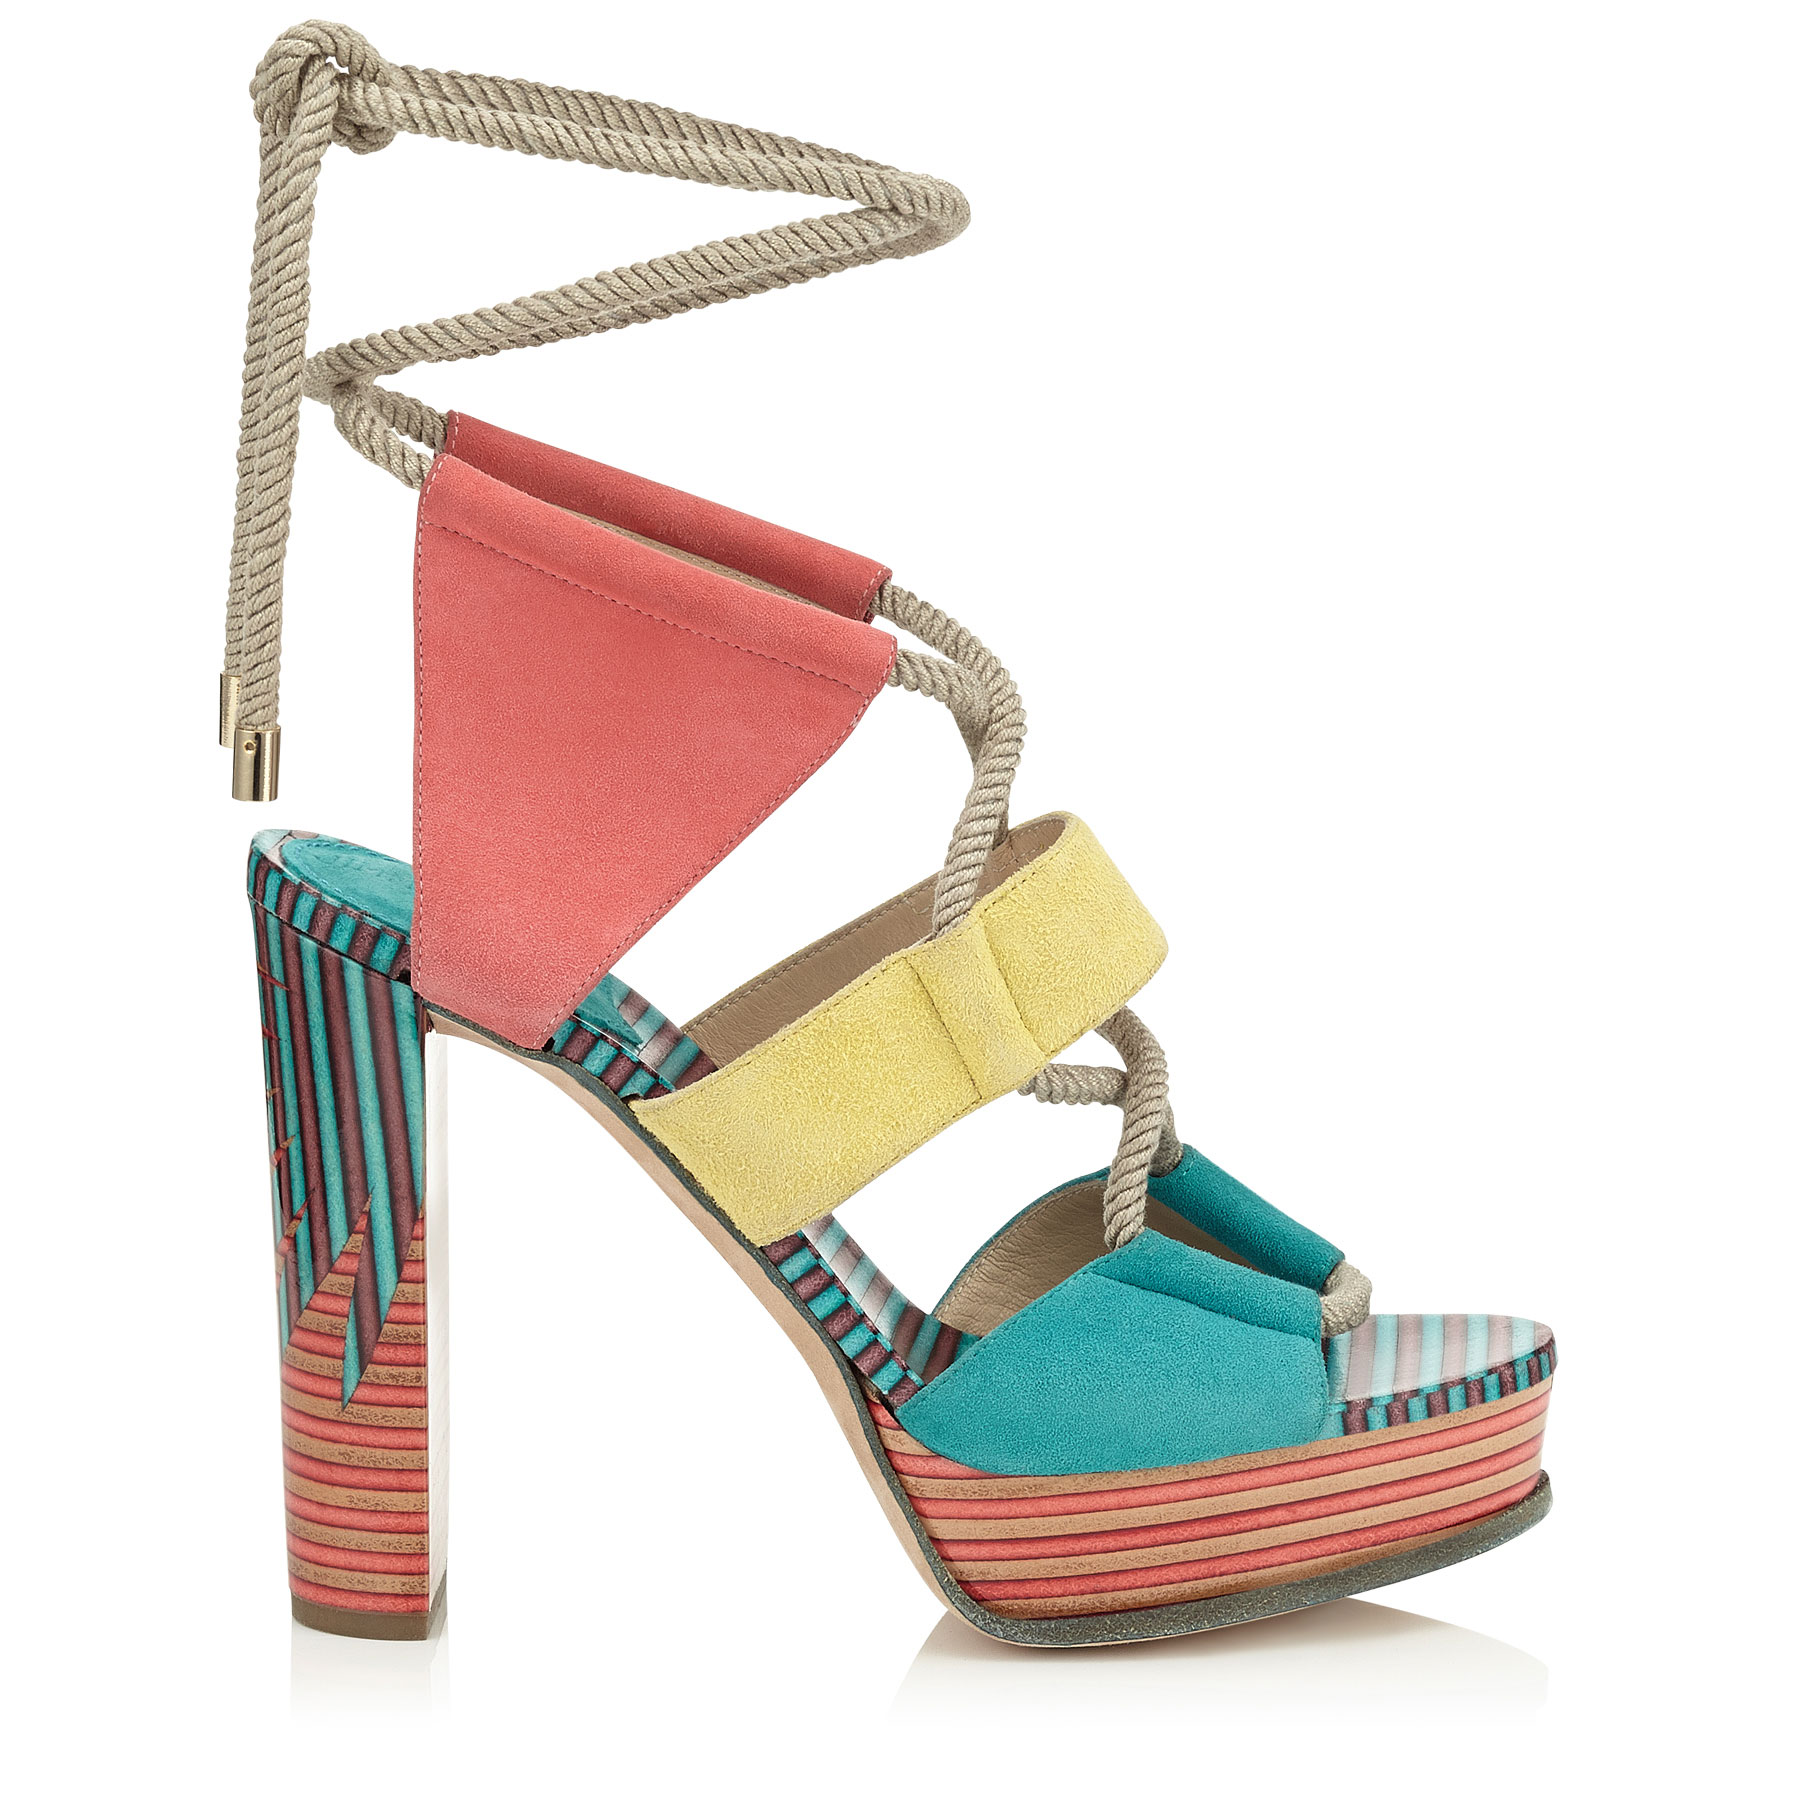 HALLEY 120 Malibu, Buttercup and Coral Pink Suede Platform Sandals